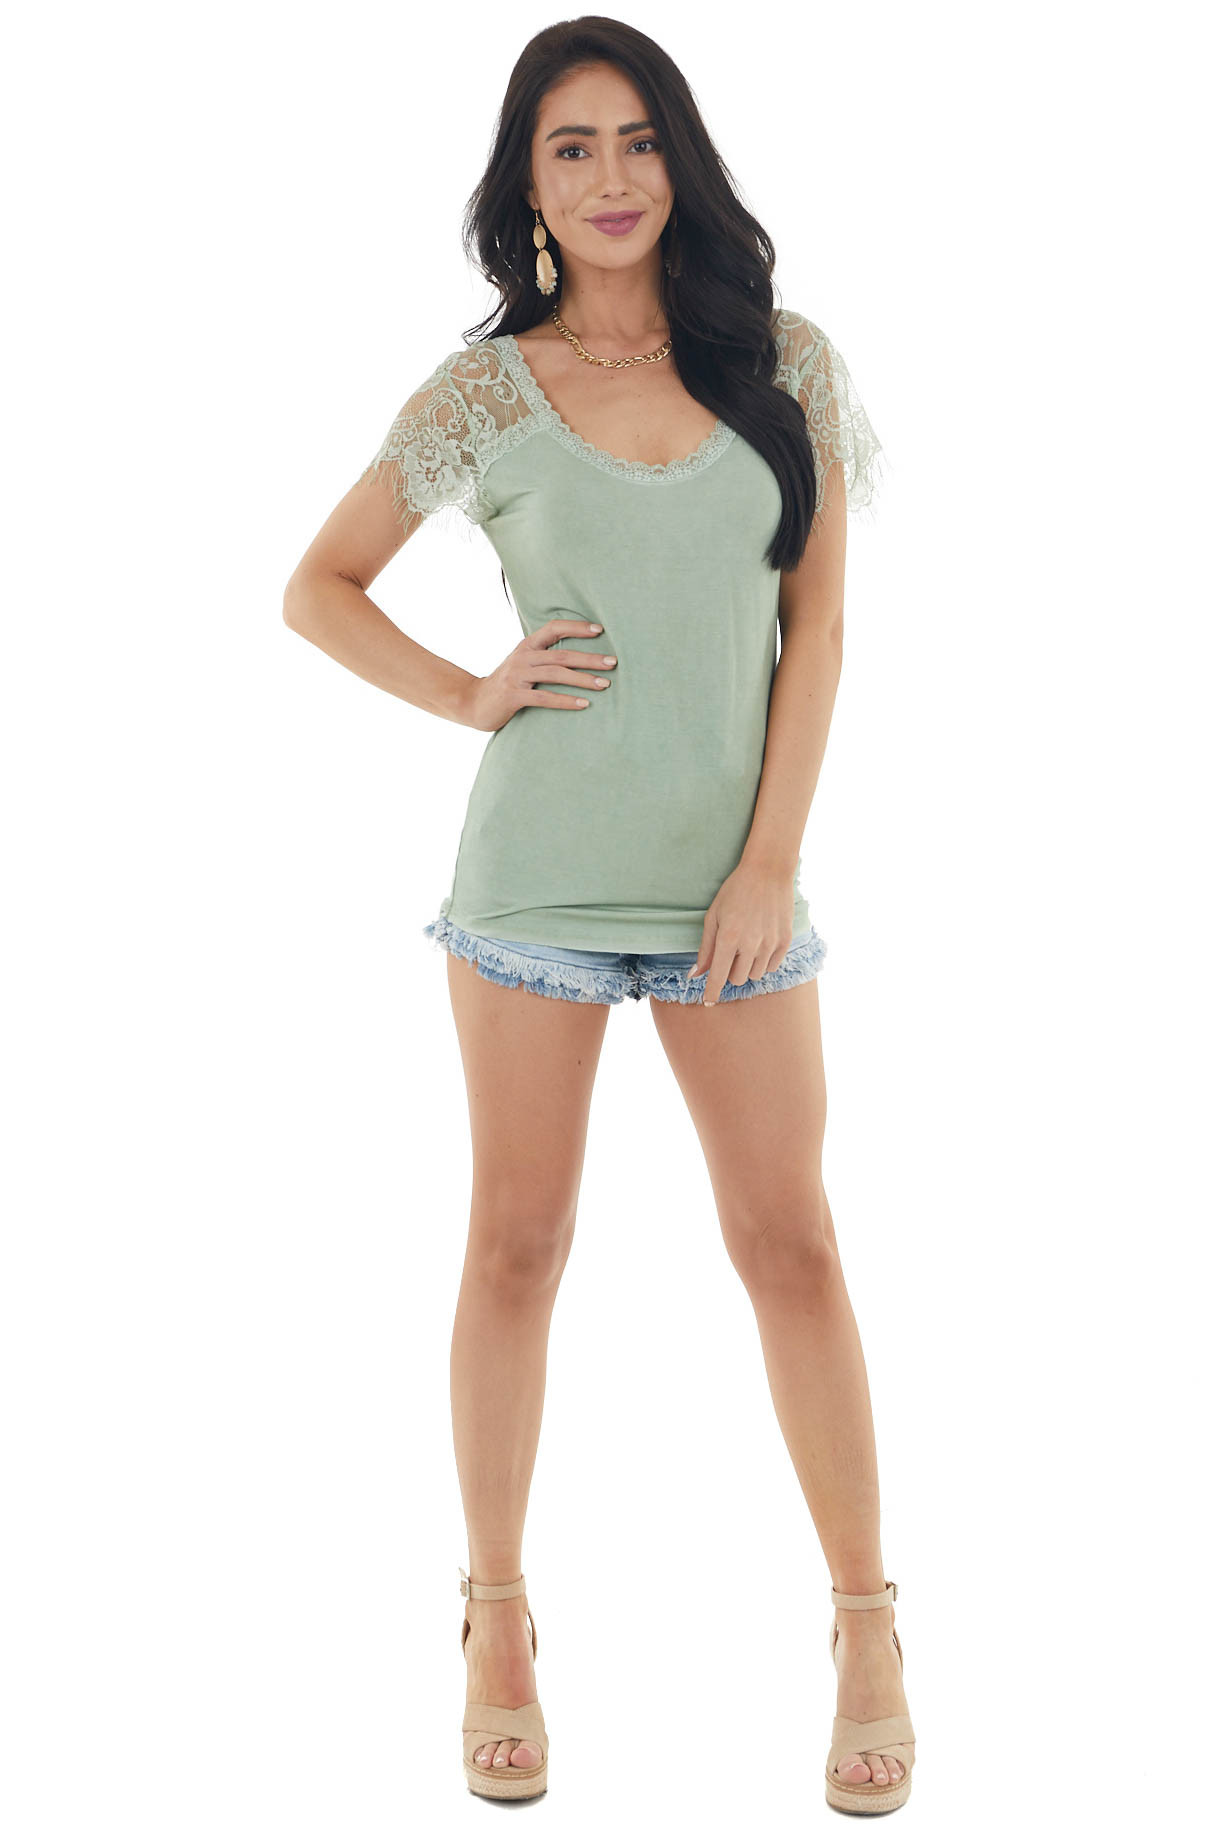 Faded Sage Scoop Neck Top with Sheer Lace Sleeves and Fringe